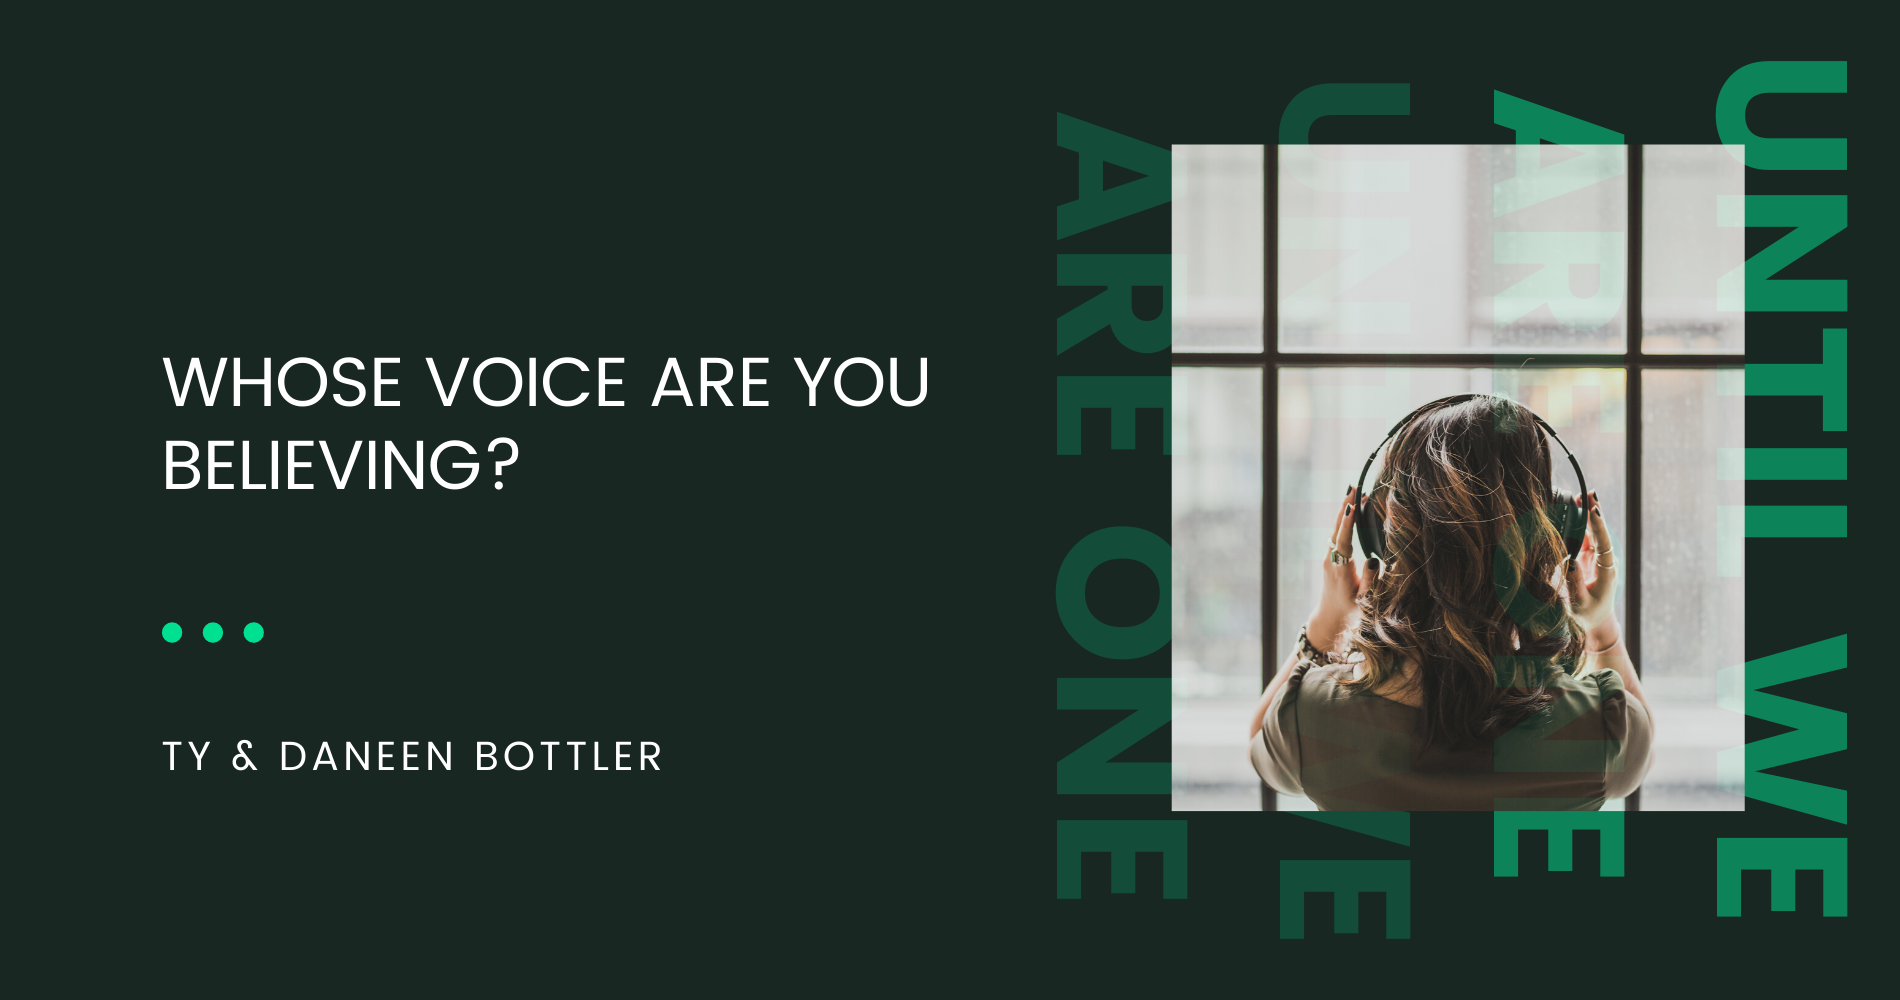 Whose Voice are You Believing?